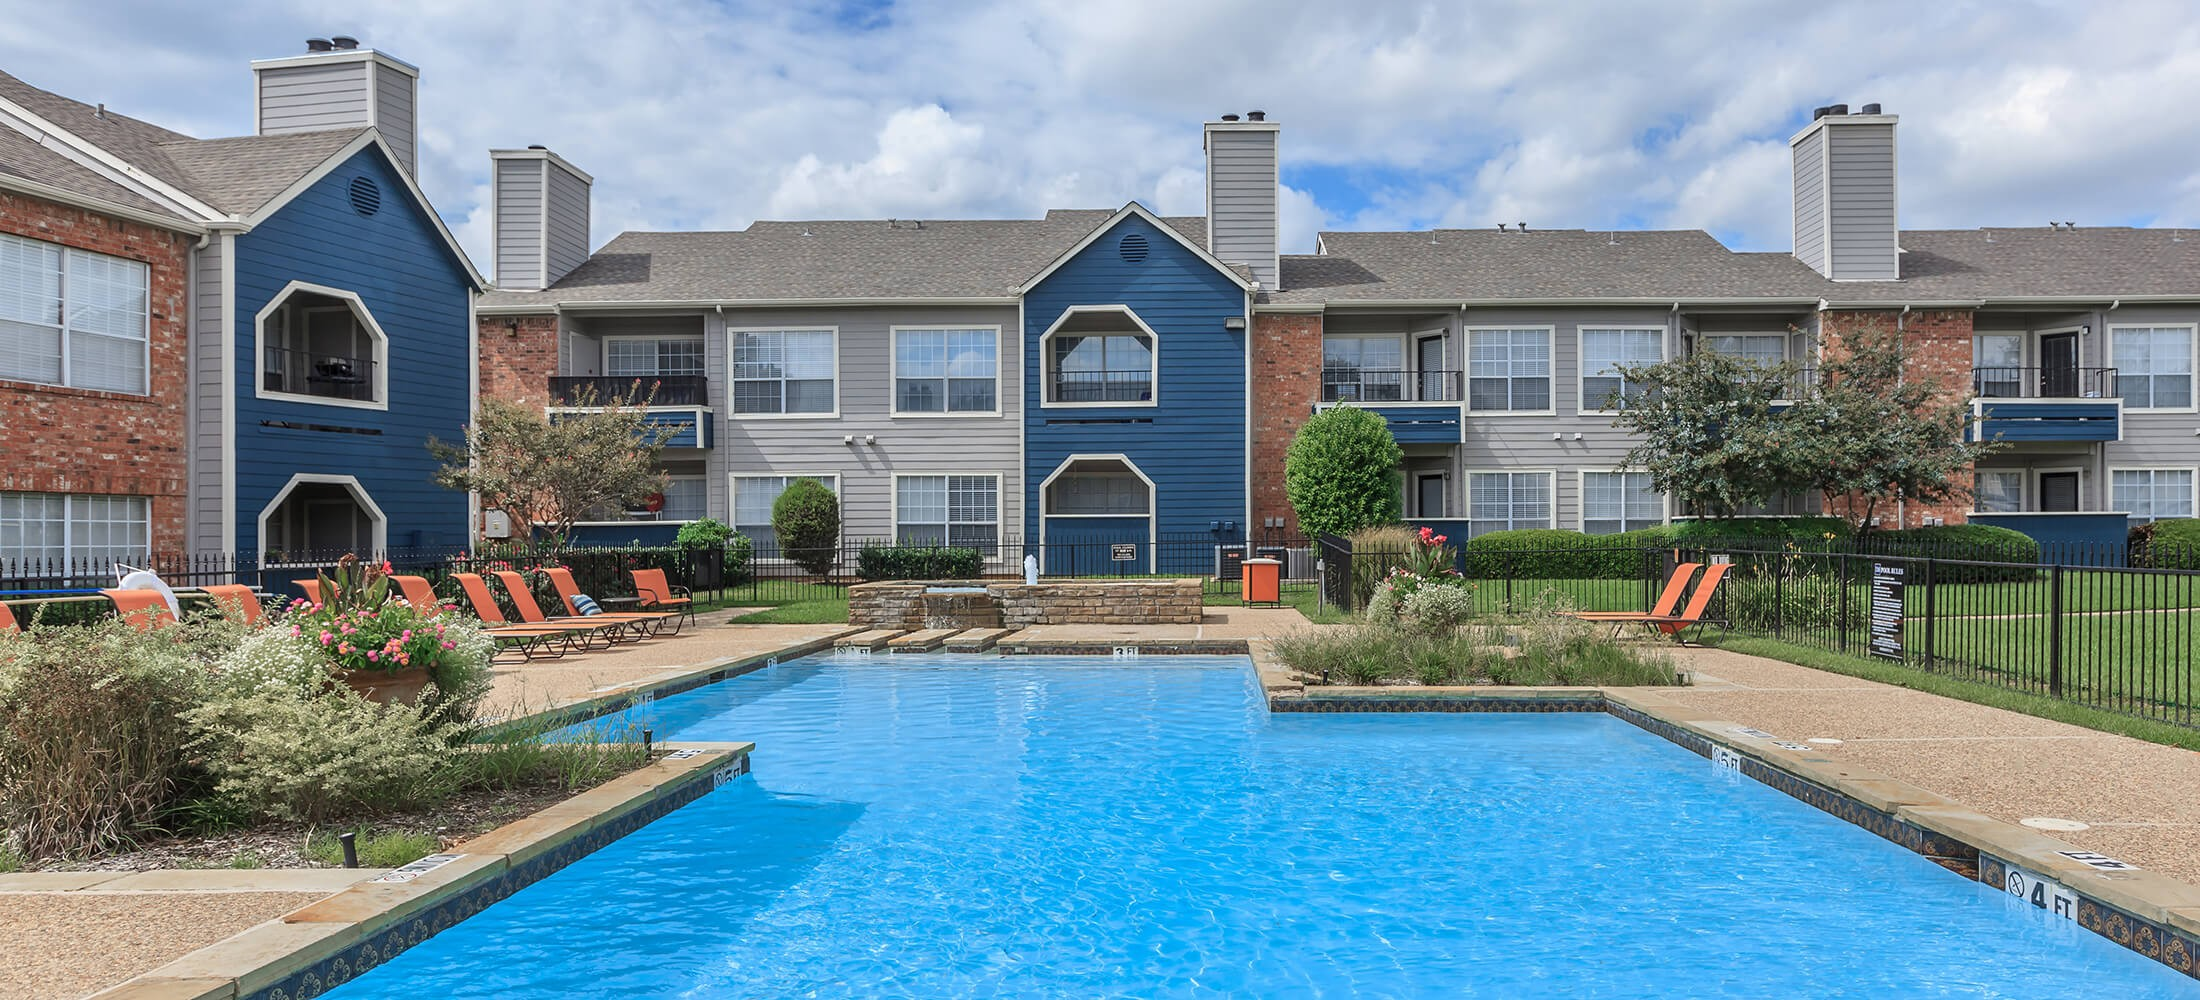 New Homes For Sale In Arlington Tx